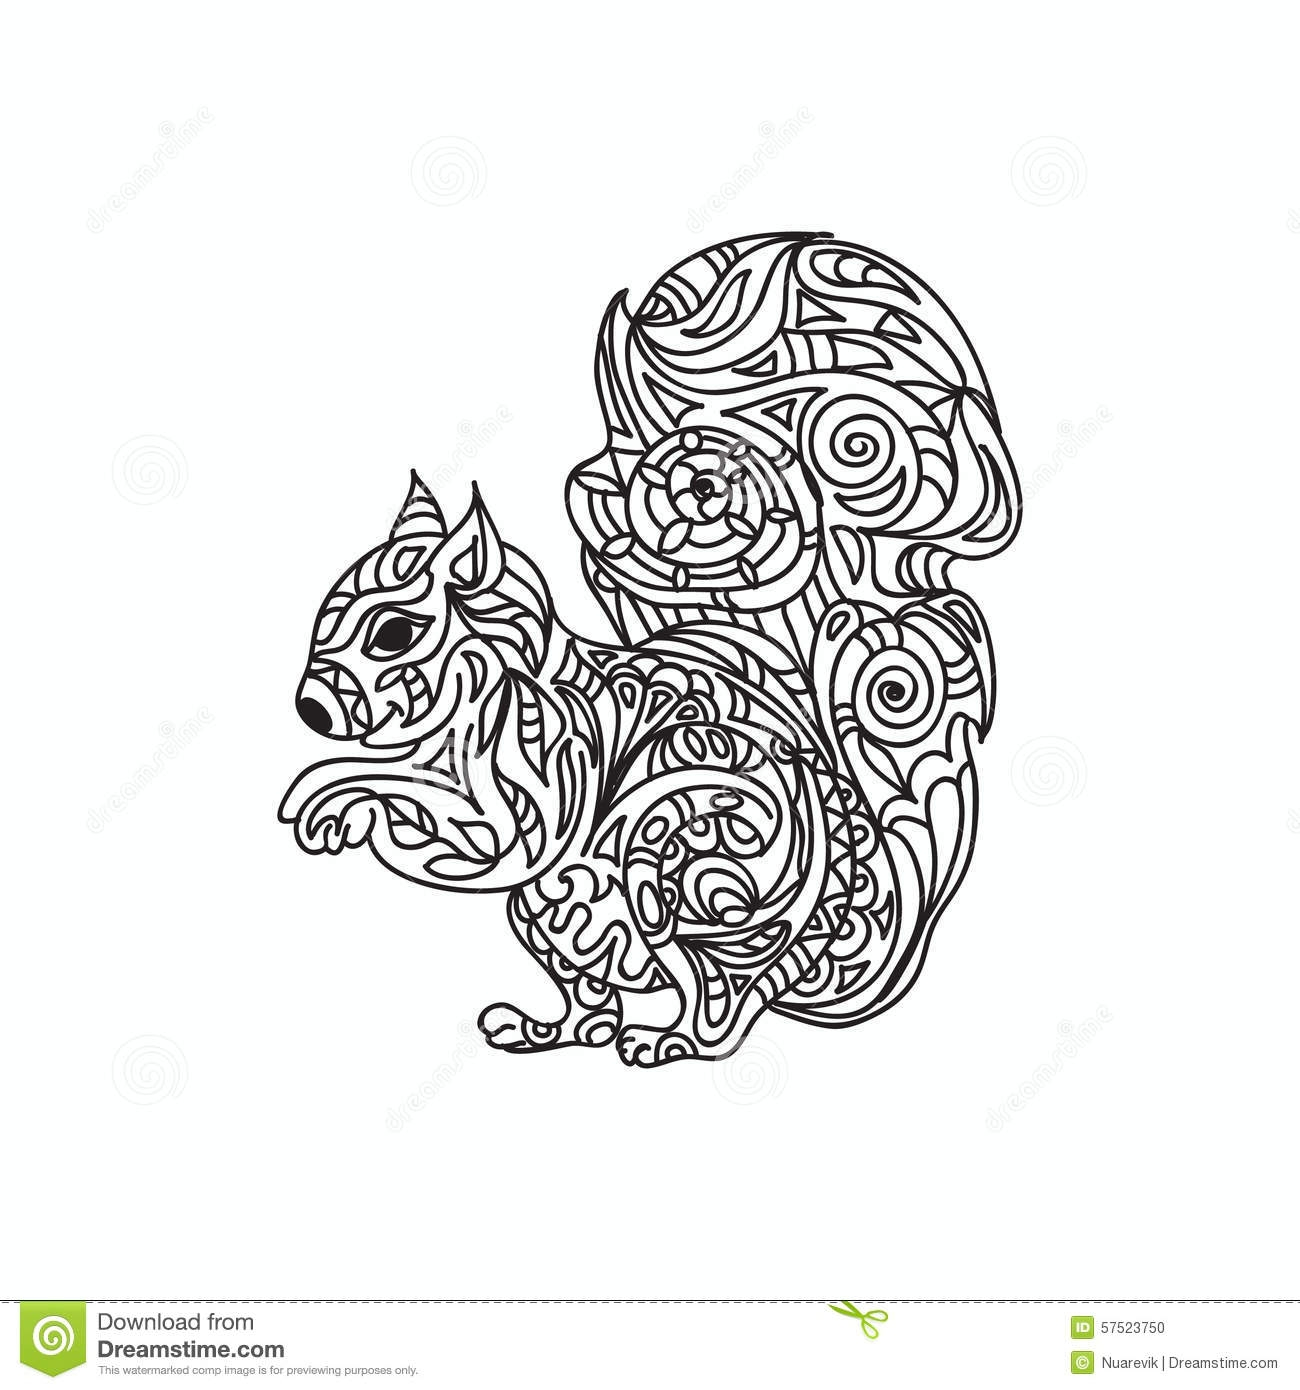 otter coloring pages - stock illustration squirrel coloring page isolated white image